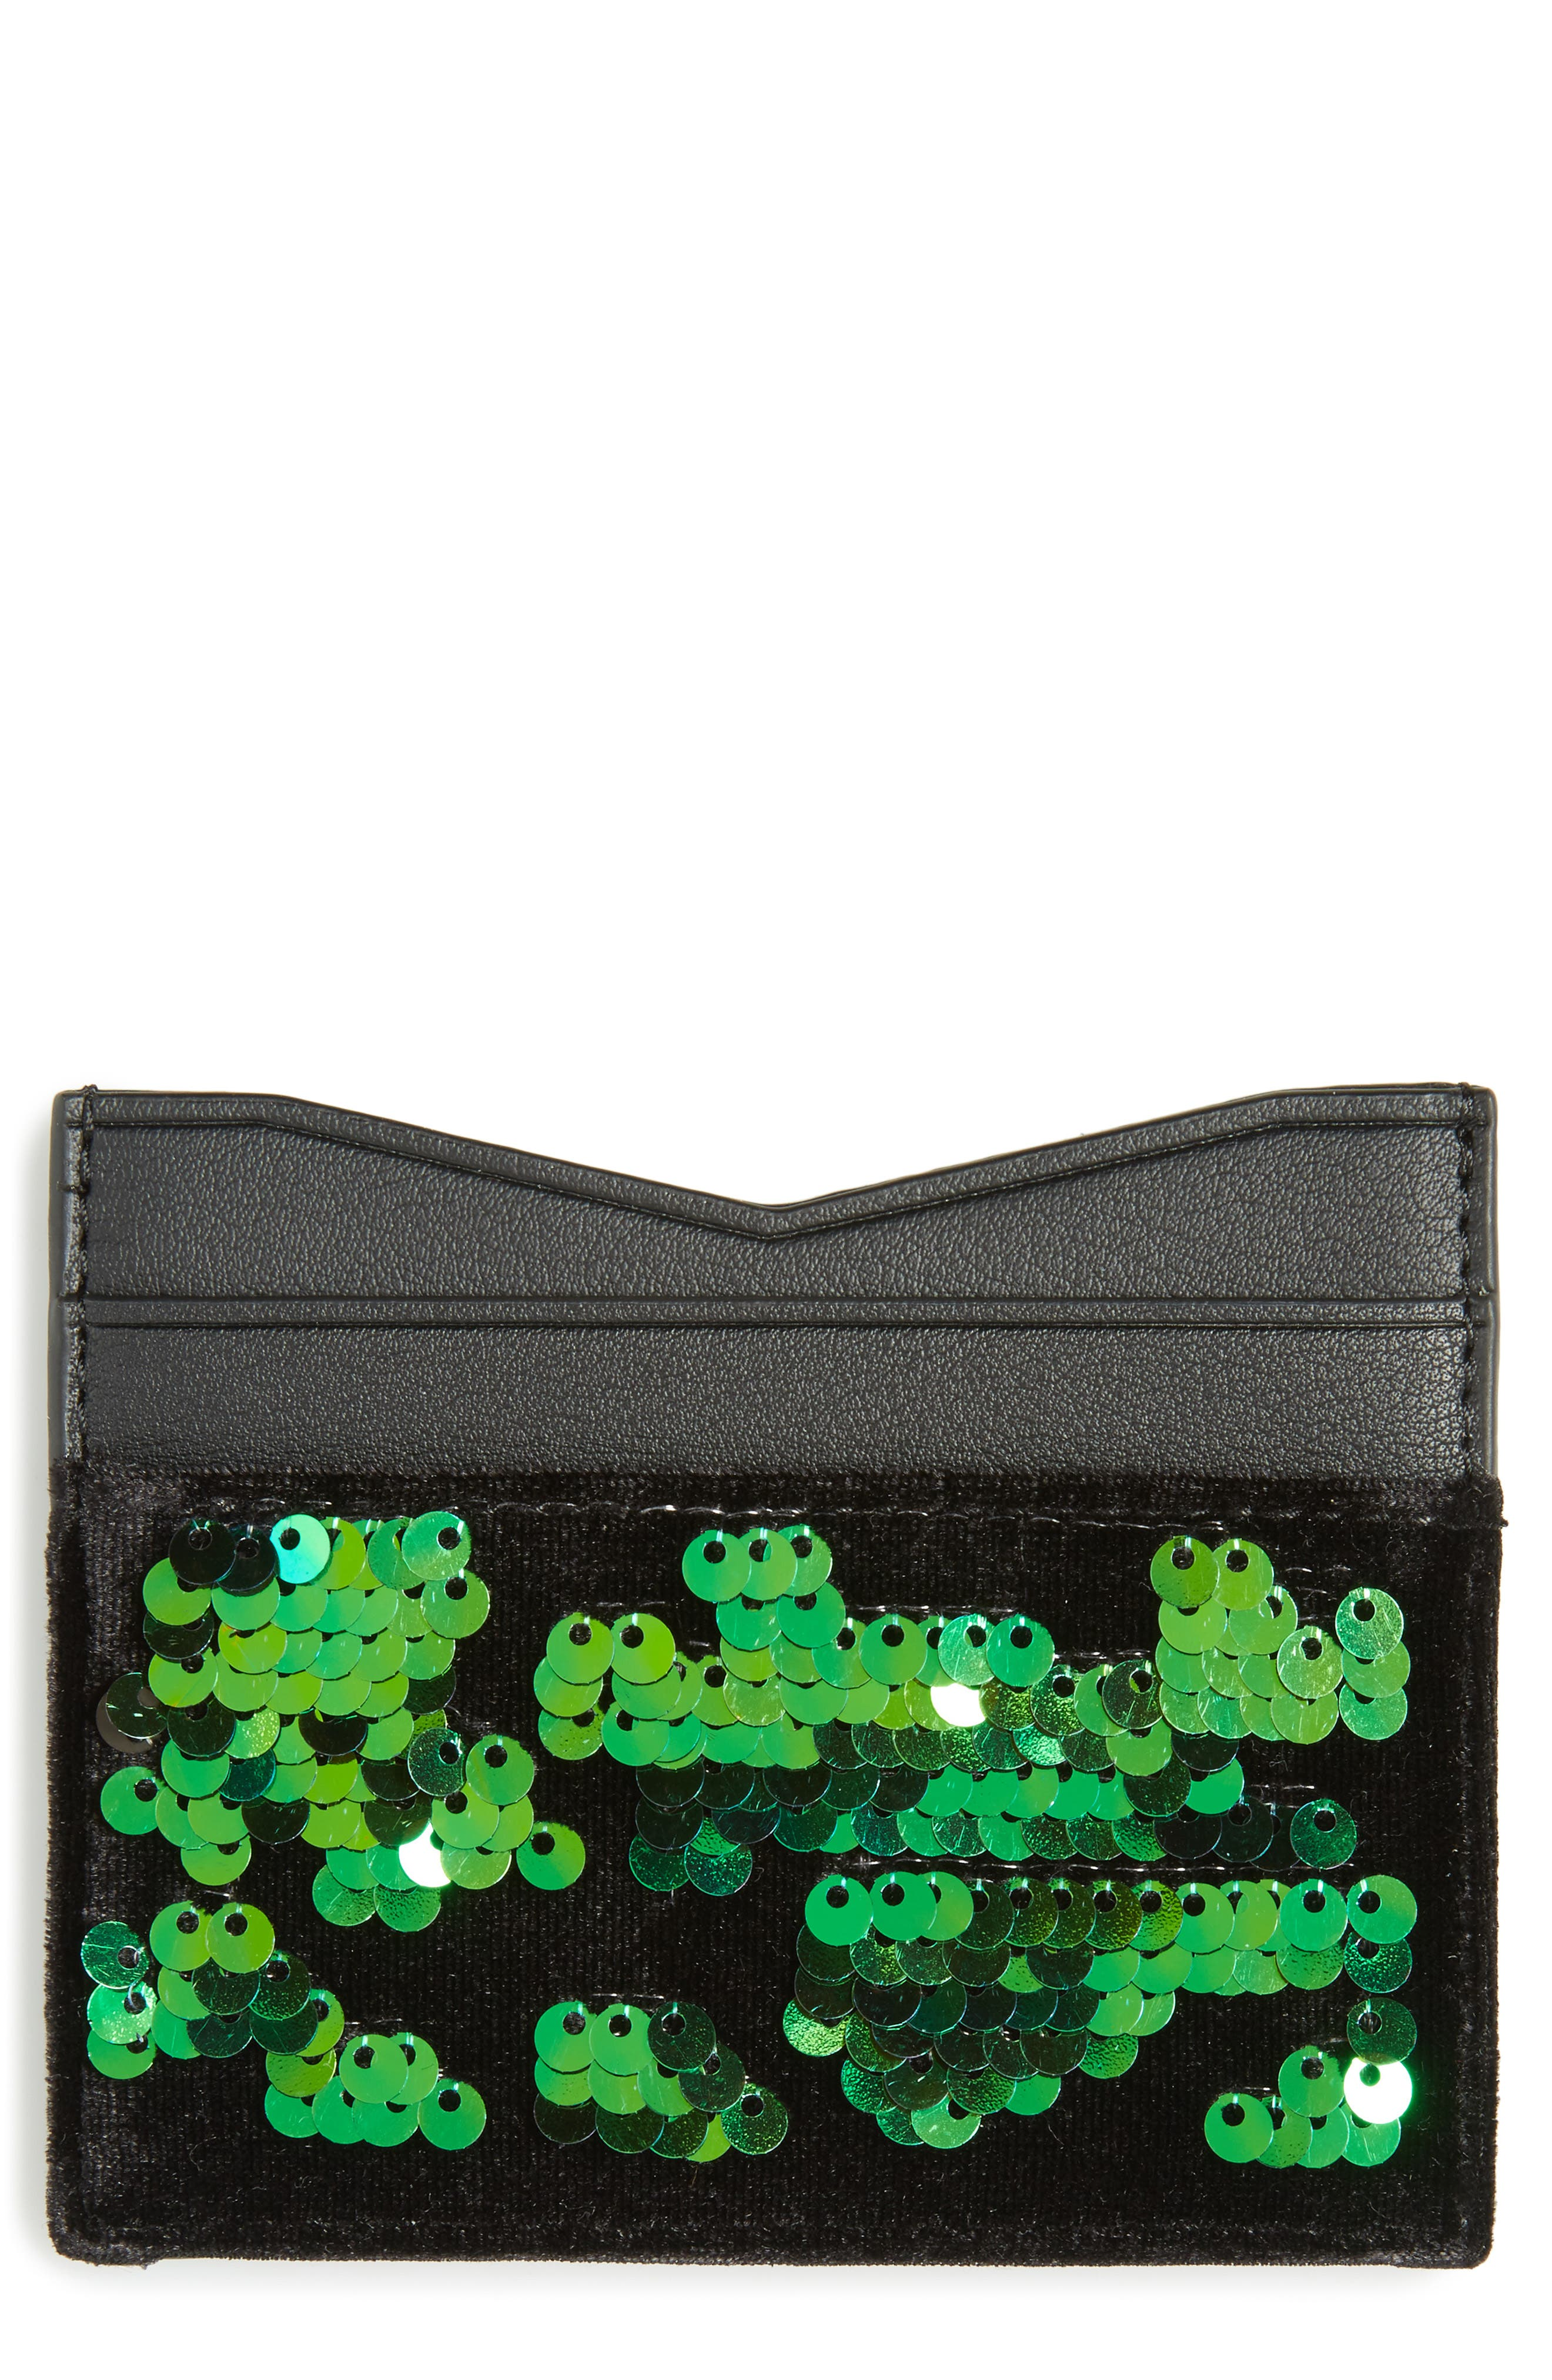 Alternate Image 1 Selected - KENDALL + KYLIE Emma Sequin & Faux Leather Card Case